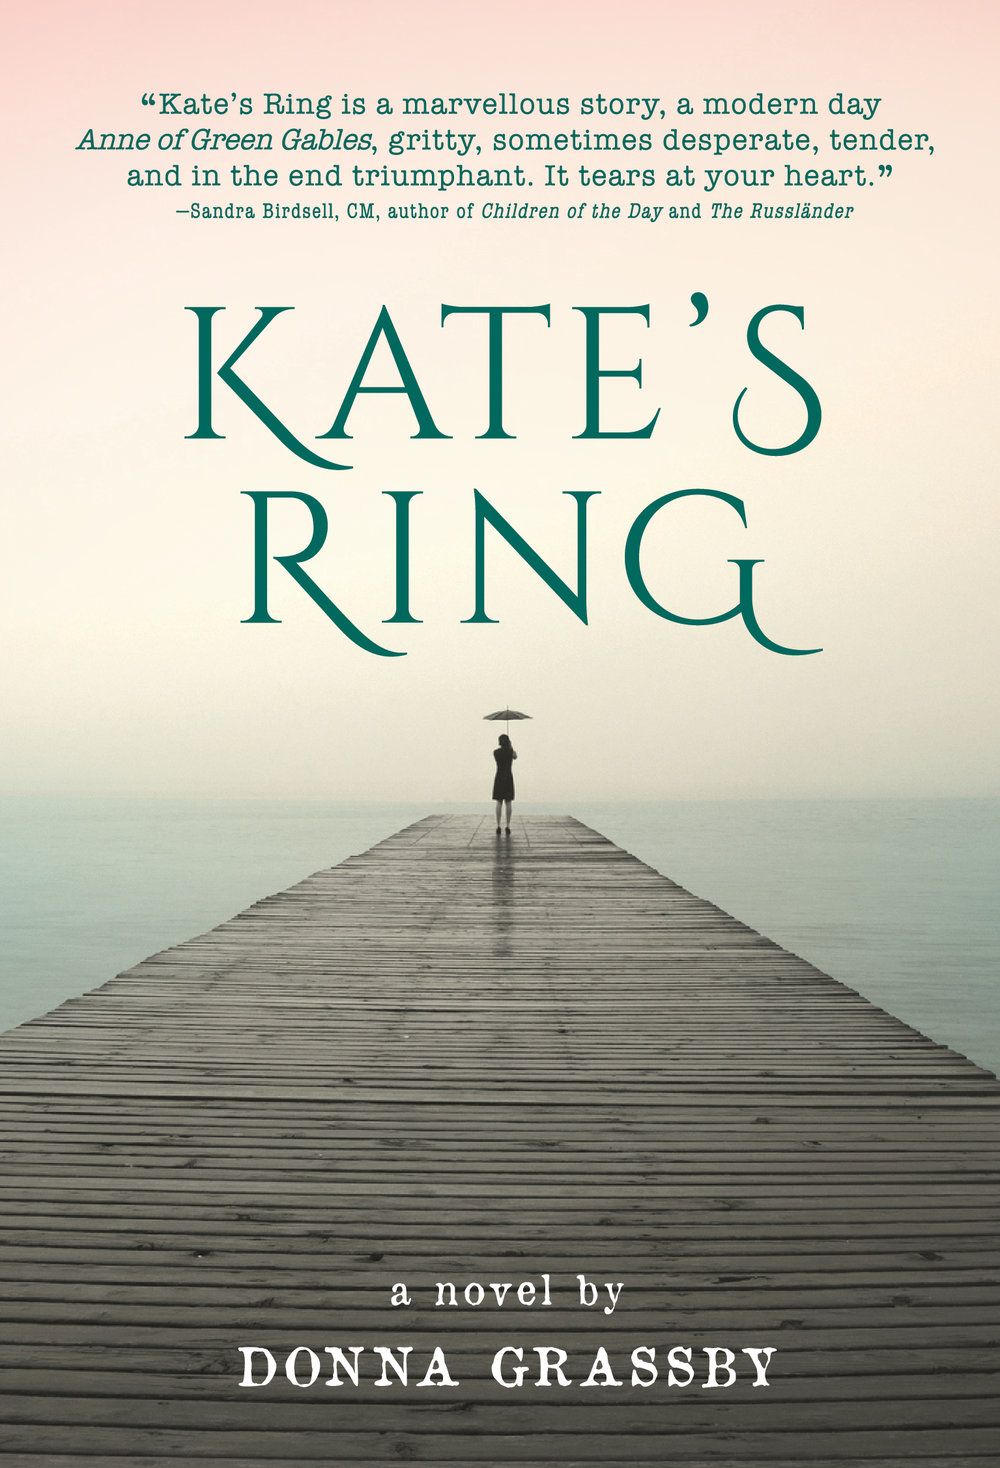 Review Copy - Advance Review copies of 'Kate's Ring' are available upon request. To receive your copy, click below.